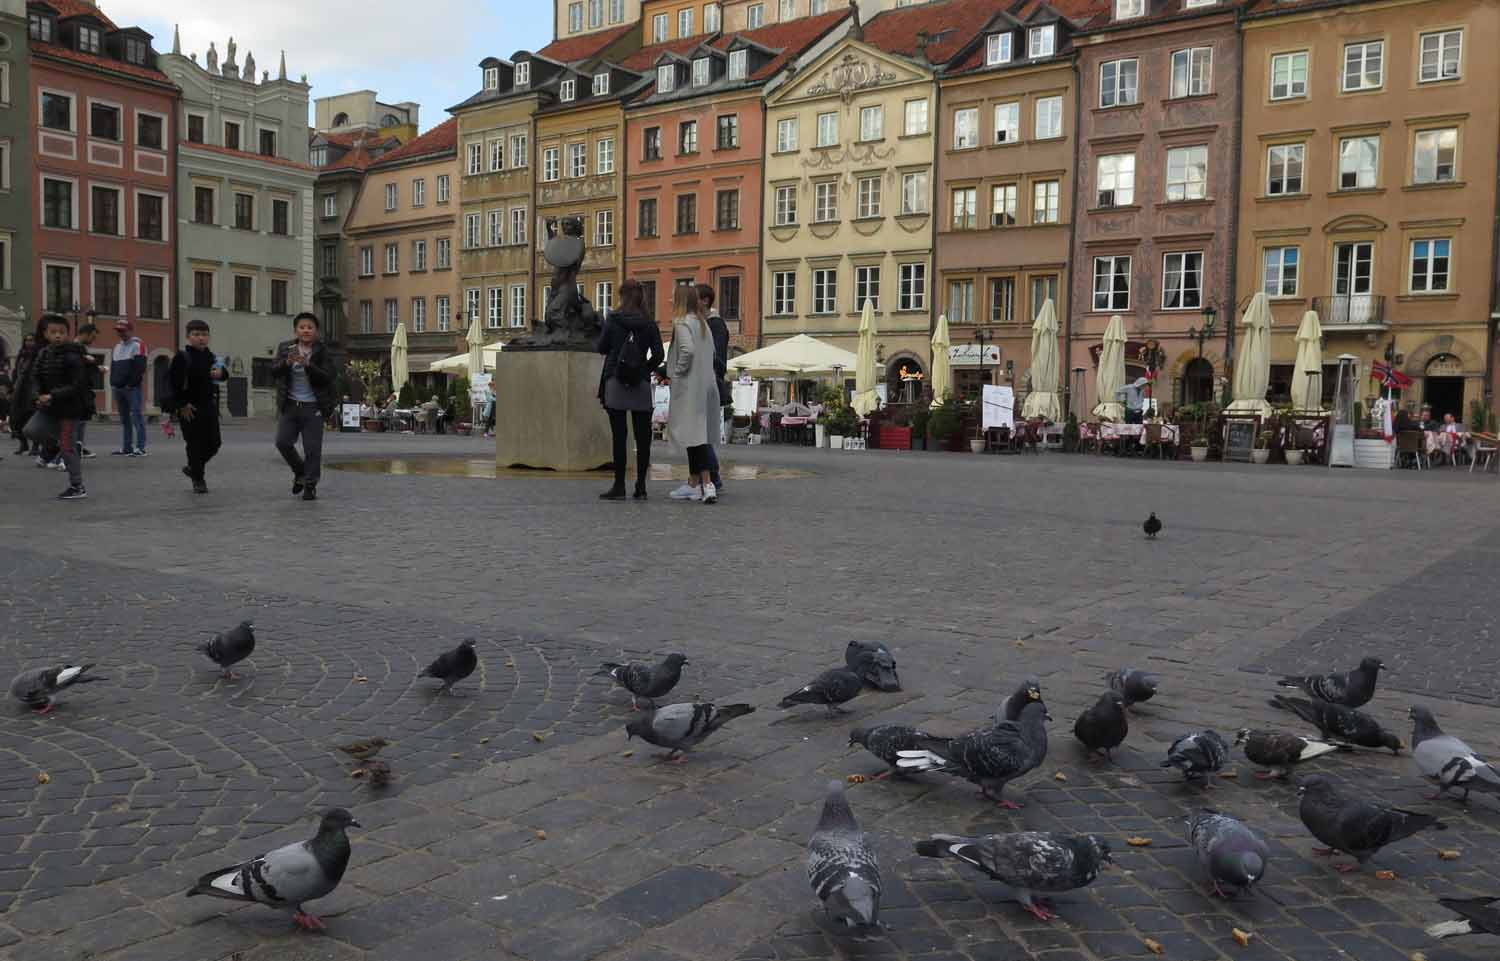 Poland-Warsaw-Old-Town-Square-Pigeons